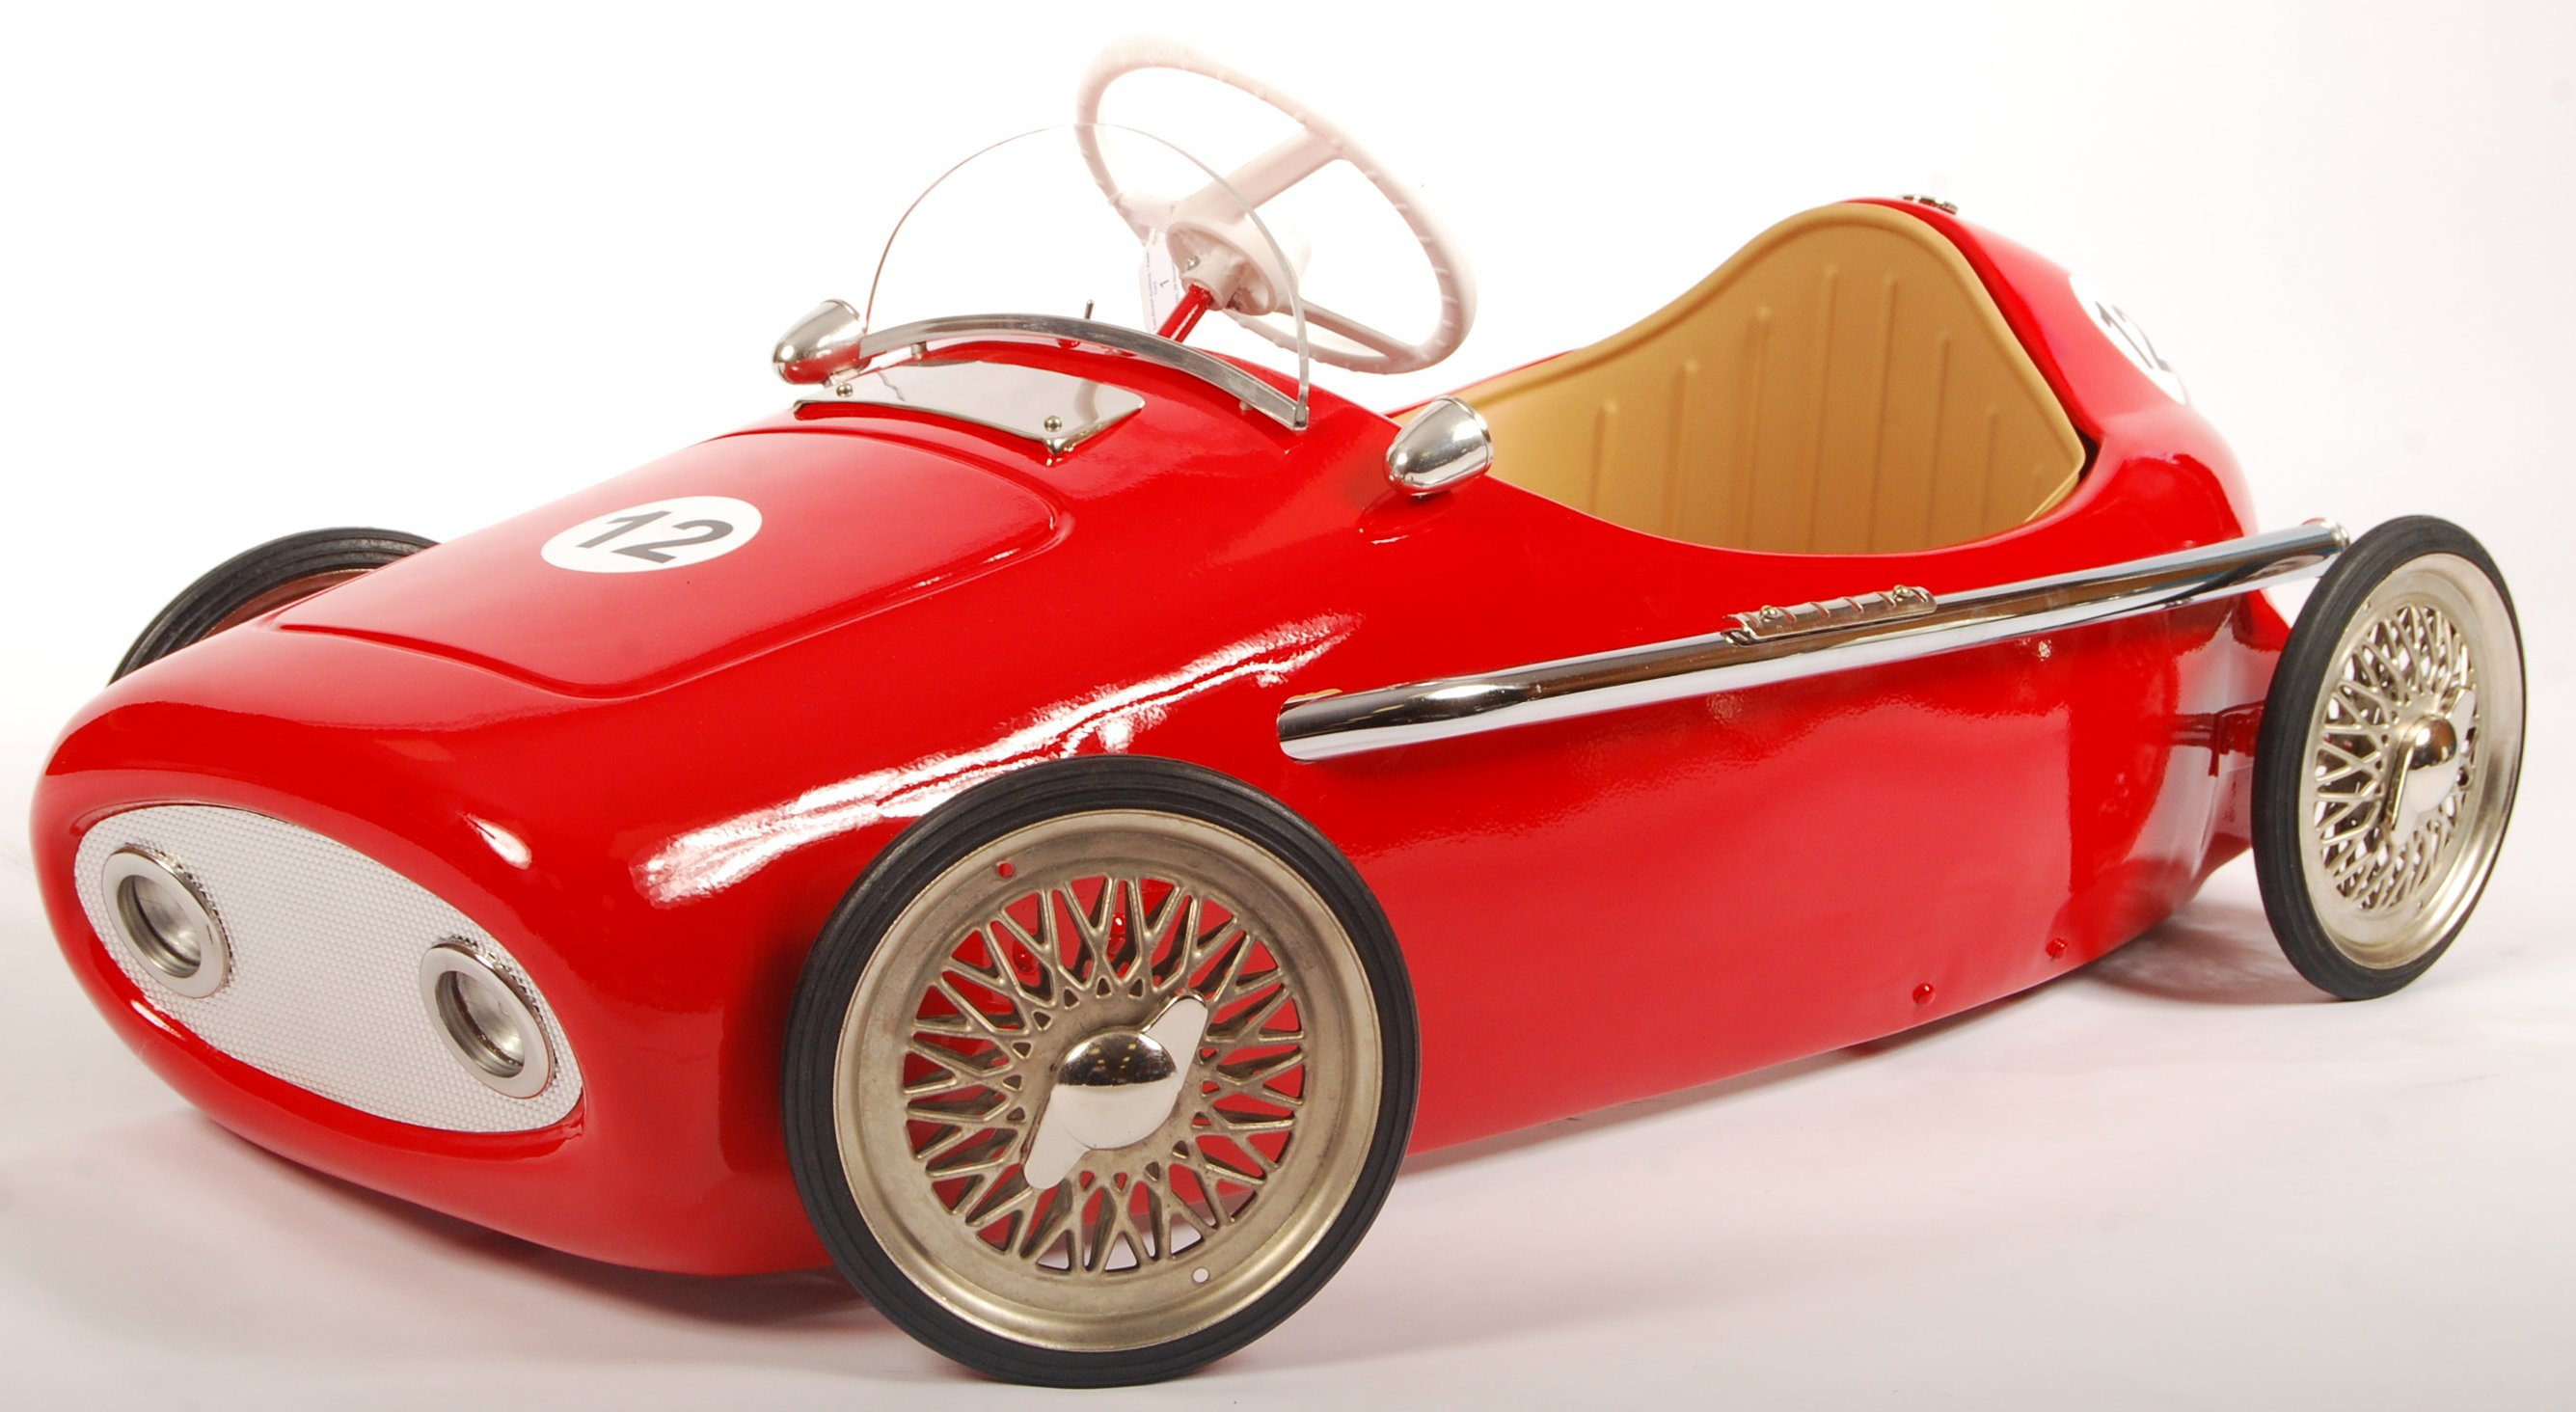 Private Collection Of Pedal Cars - Worldwide Delivery Available On All Items, see www.eastbristol.co.uk